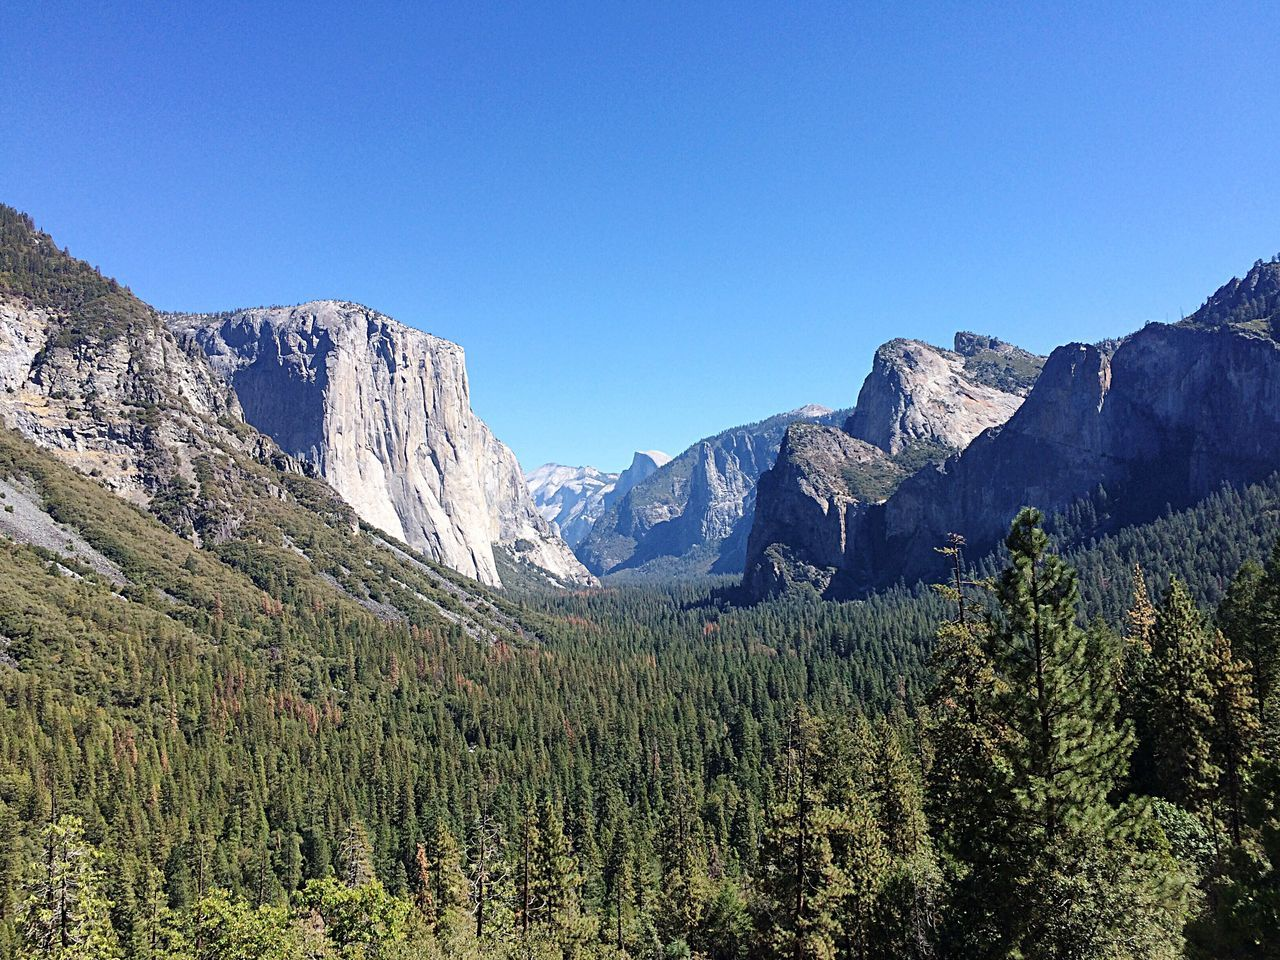 Bear-eye view of the Yosemite Valley Mountain Blue Clear Sky Nature Beauty In Nature Mountain Range Scenics Tranquility No People Sky Landscape Outdoors Day Yosemite National Park